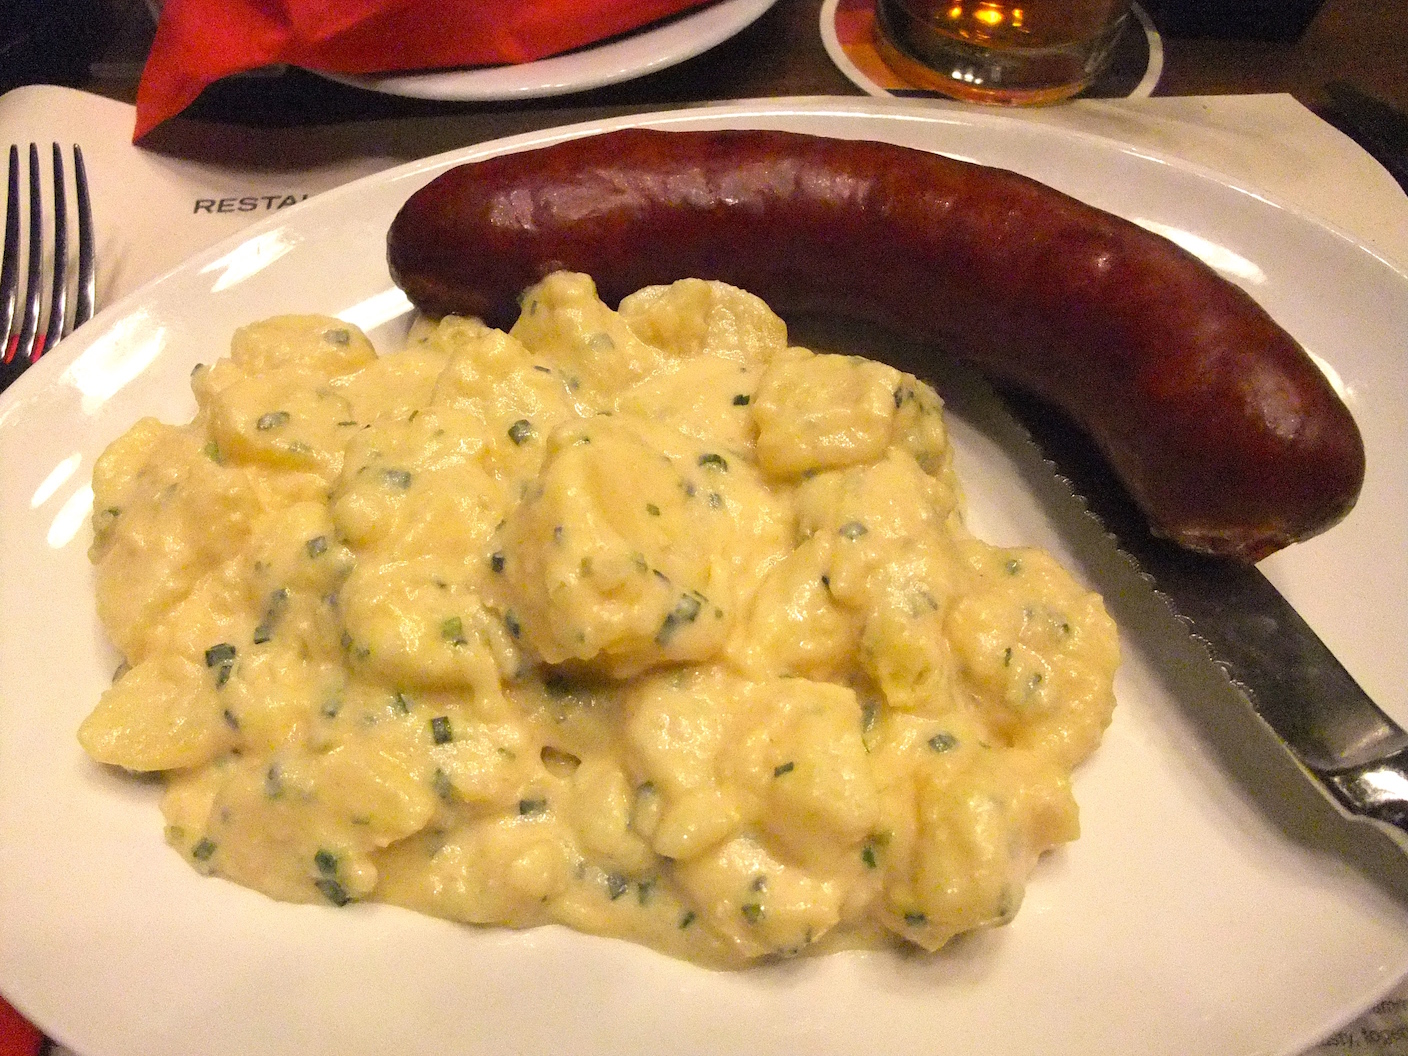 One of the sausages (I don't remember which one) and potato salad  at     Zeughauskeller